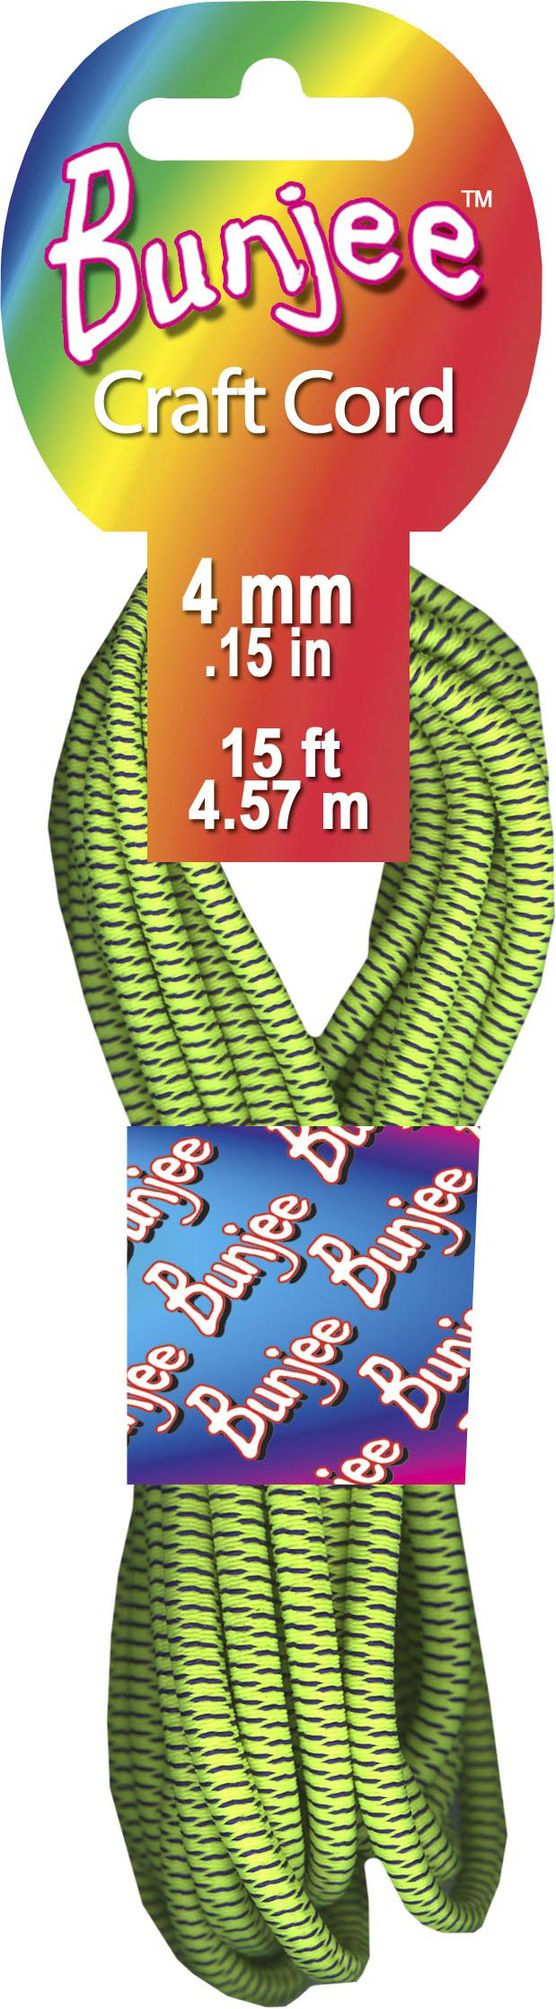 "Bungee Cord 4mm Use with end clips to make ""curtain rod"" for valances in camper."